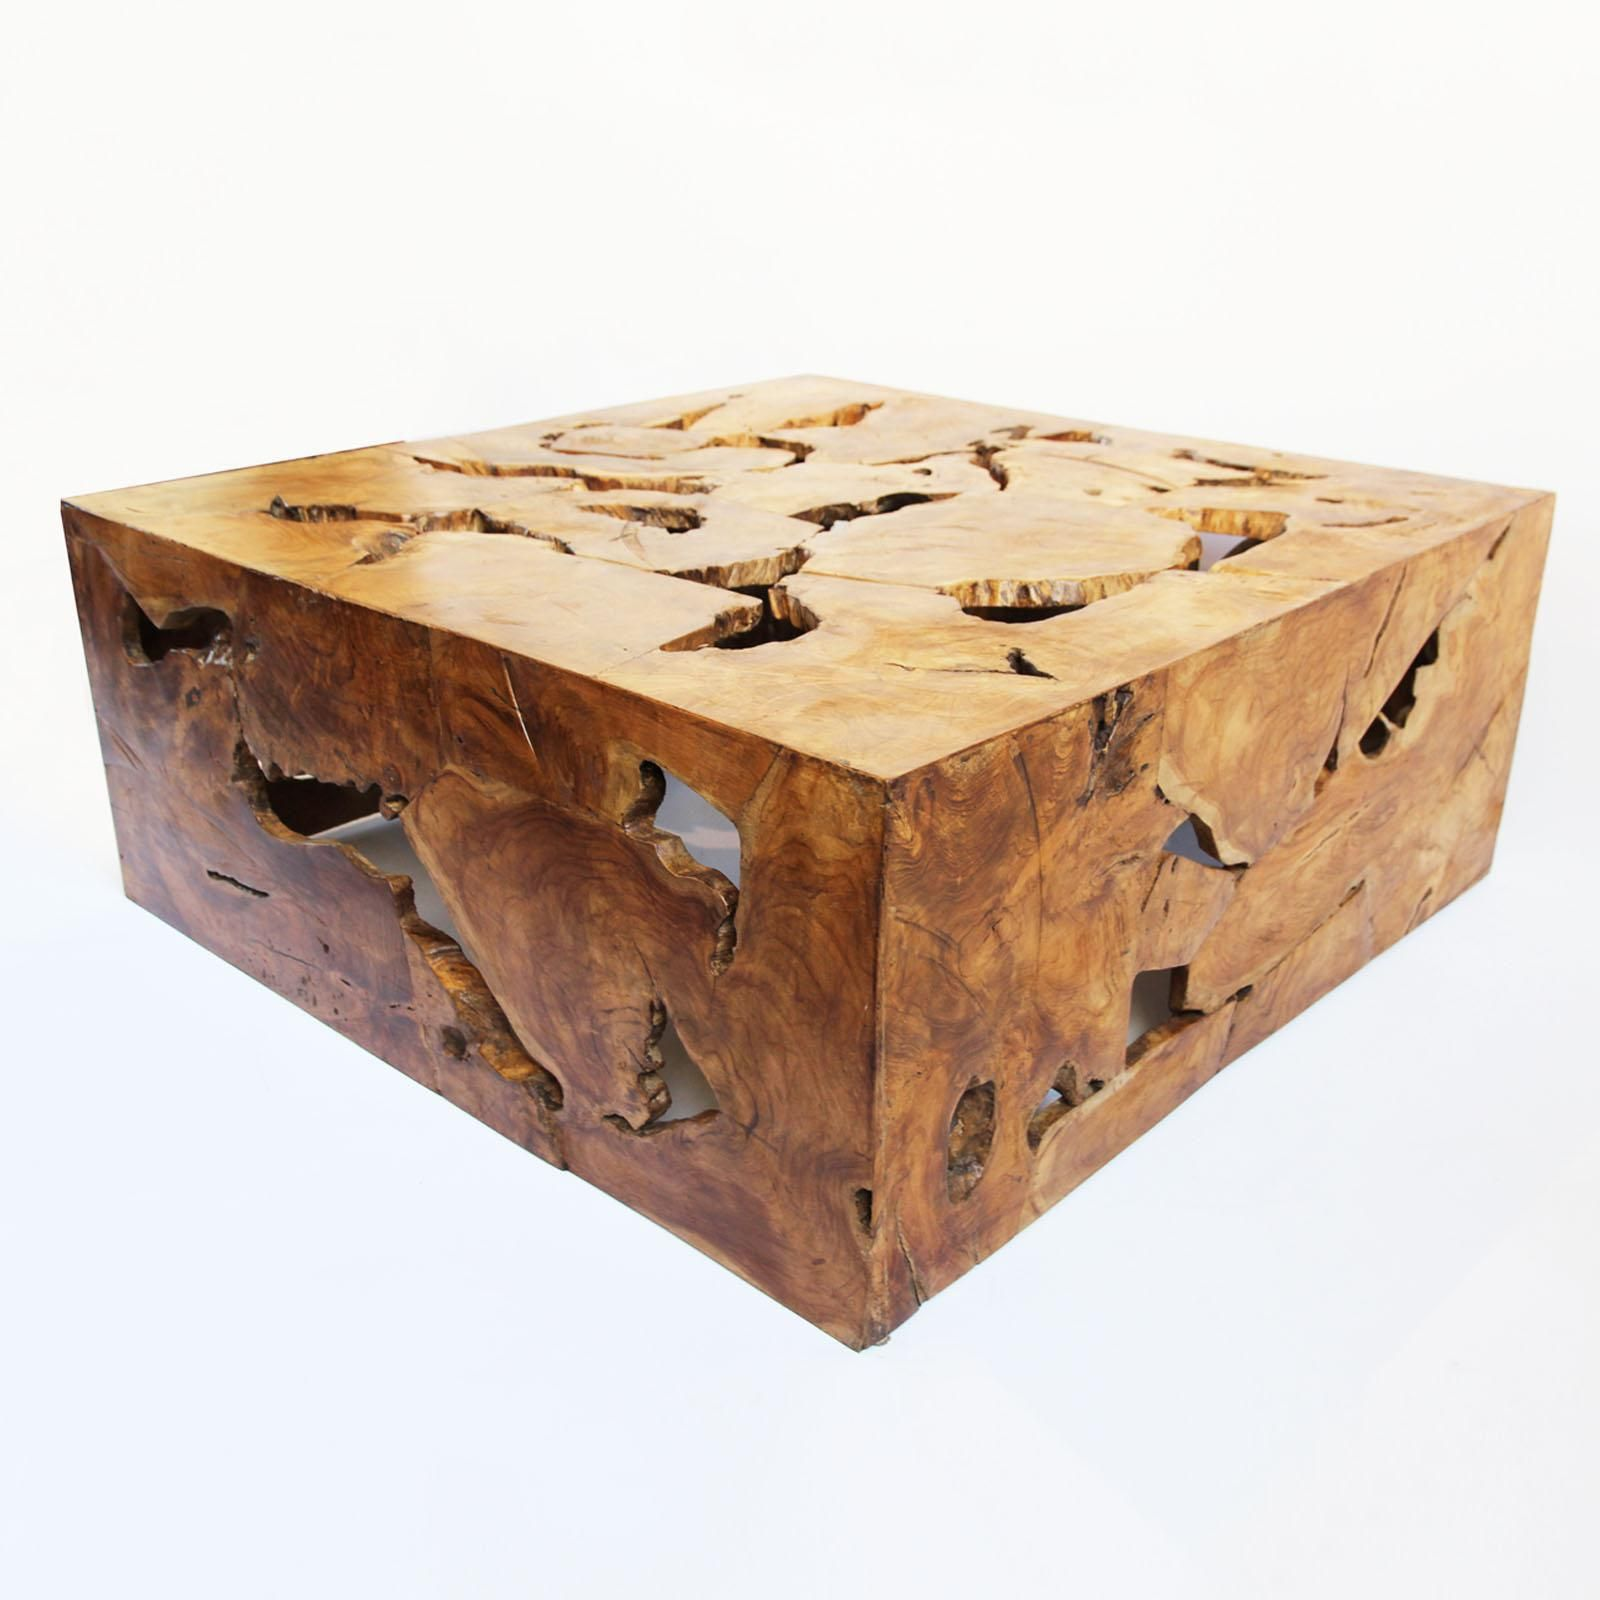 Teak Root Organic Coffee Table | Table, Table furniture ...